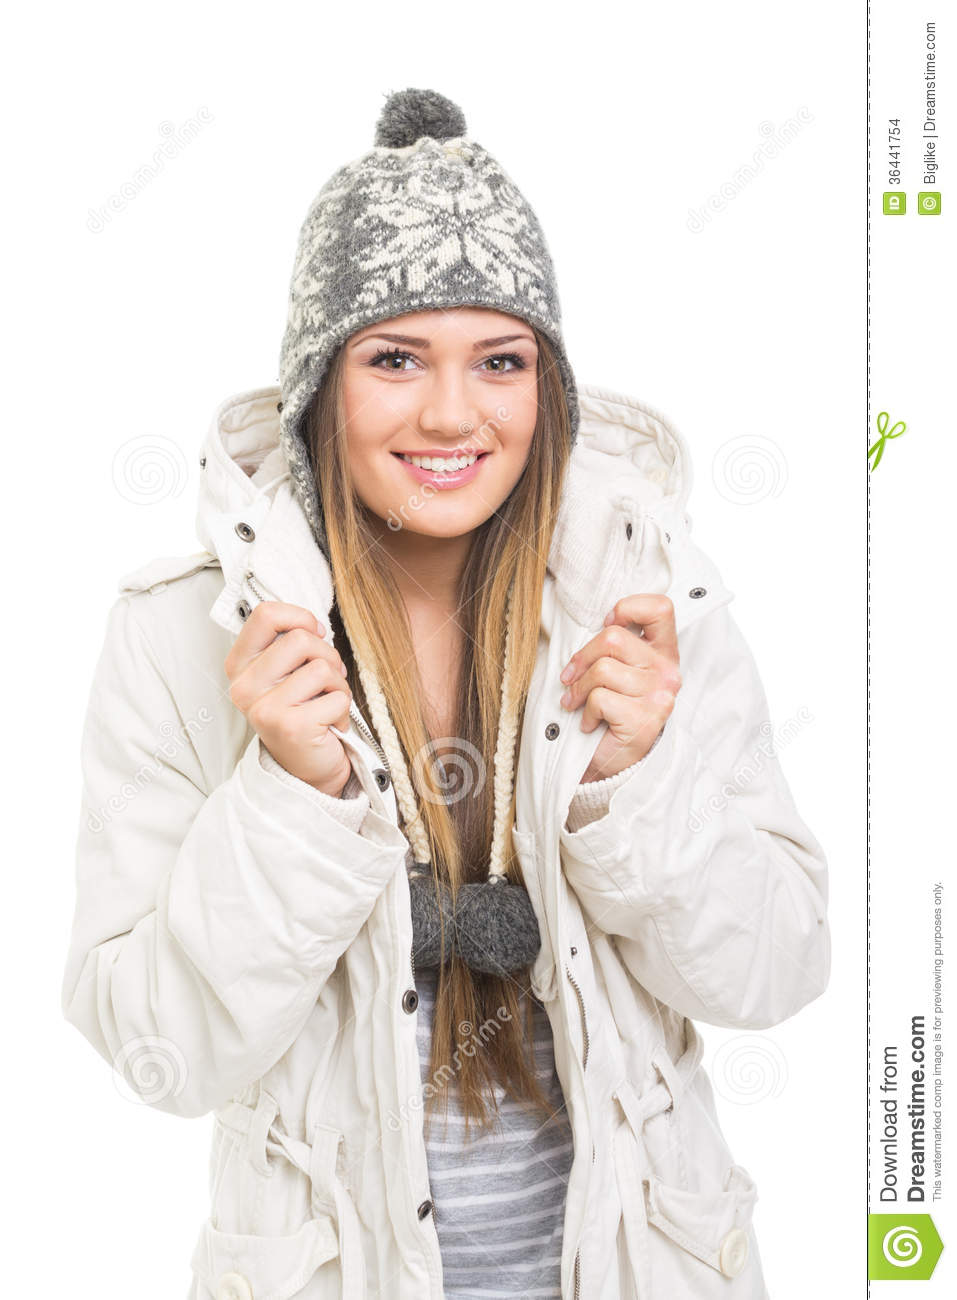 Teenage Caucasian Girl15 Years Old Sitting Outdoors: Cute Teenage Girl With Beanie Hat And Jacket Smiling Stock